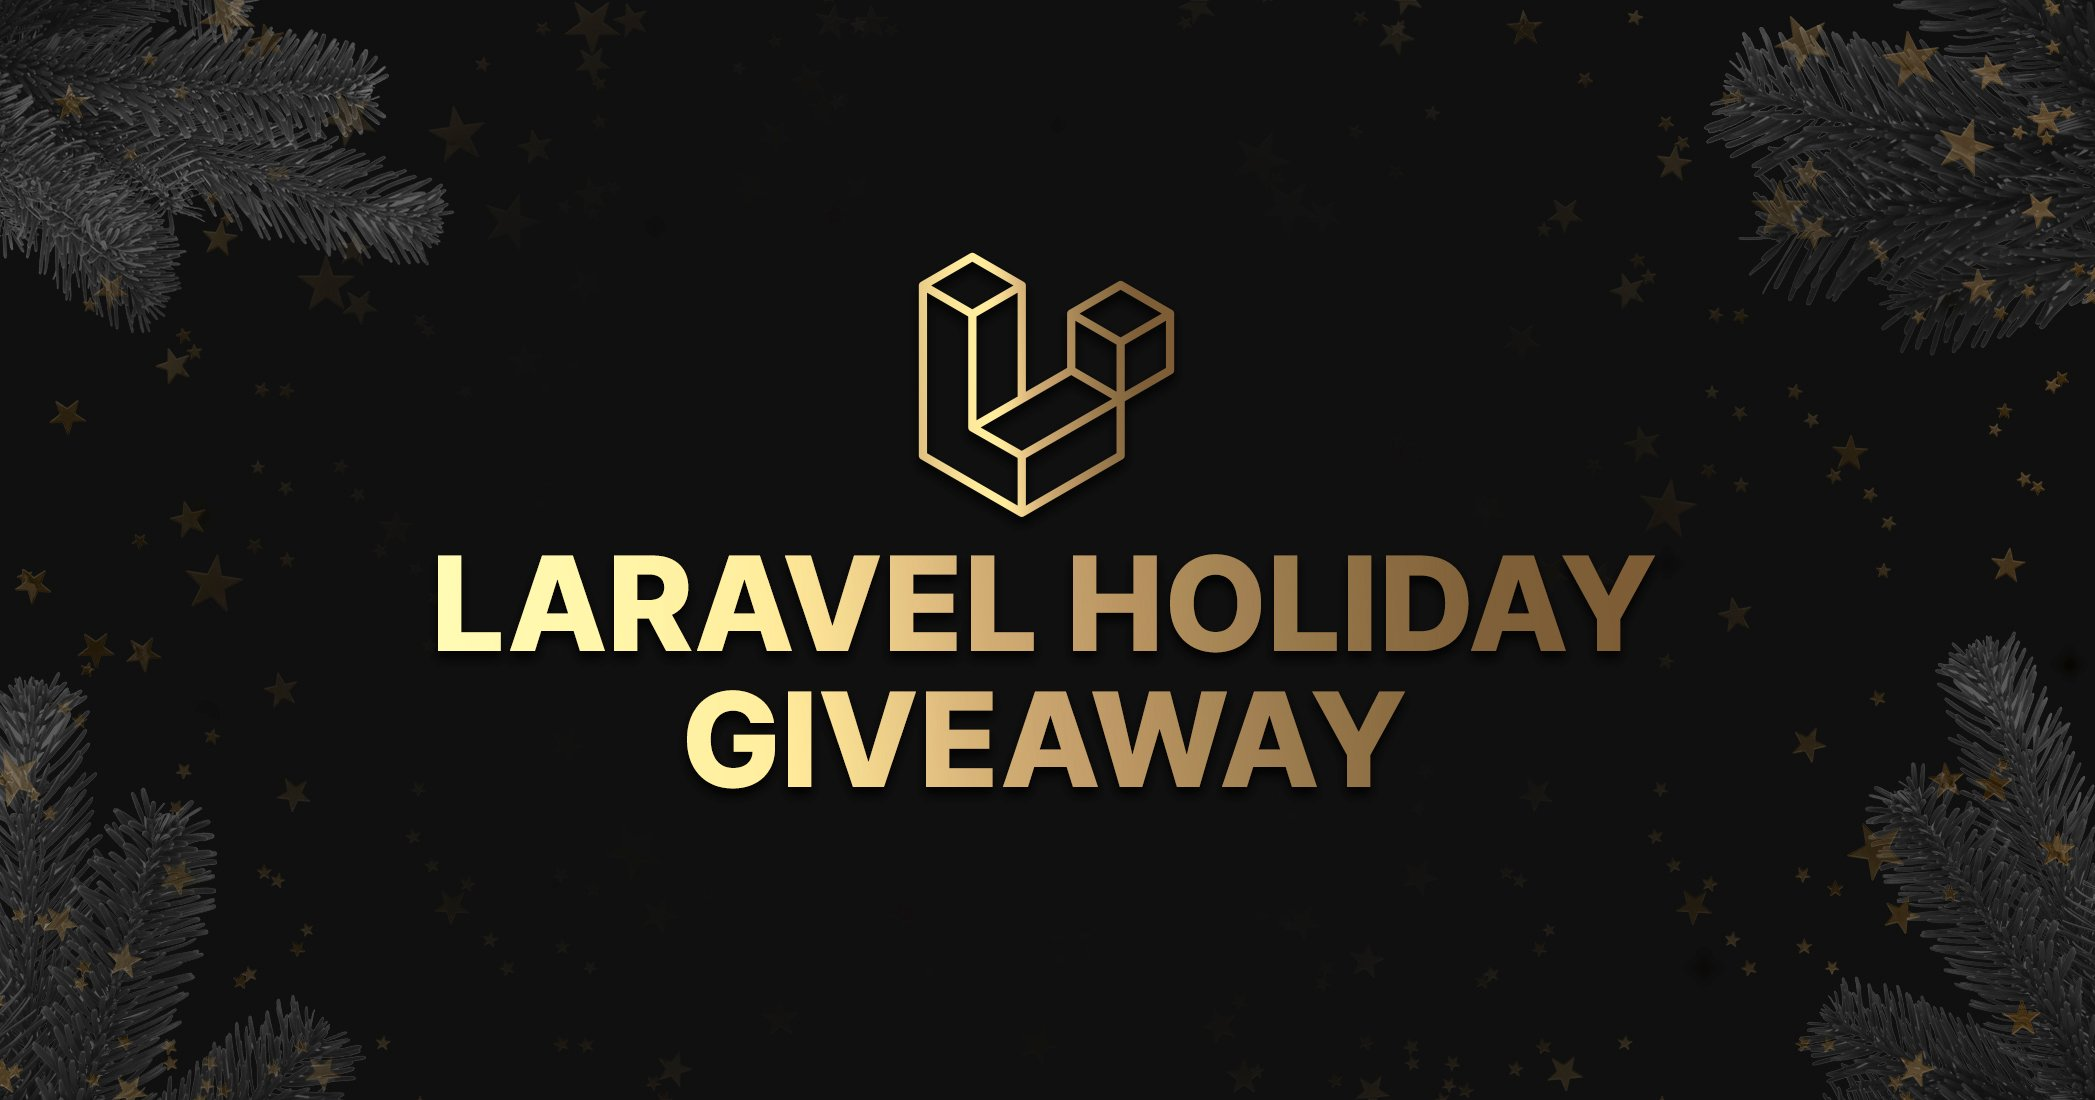 Laravel-news-holiday-giveaway-2.jpg